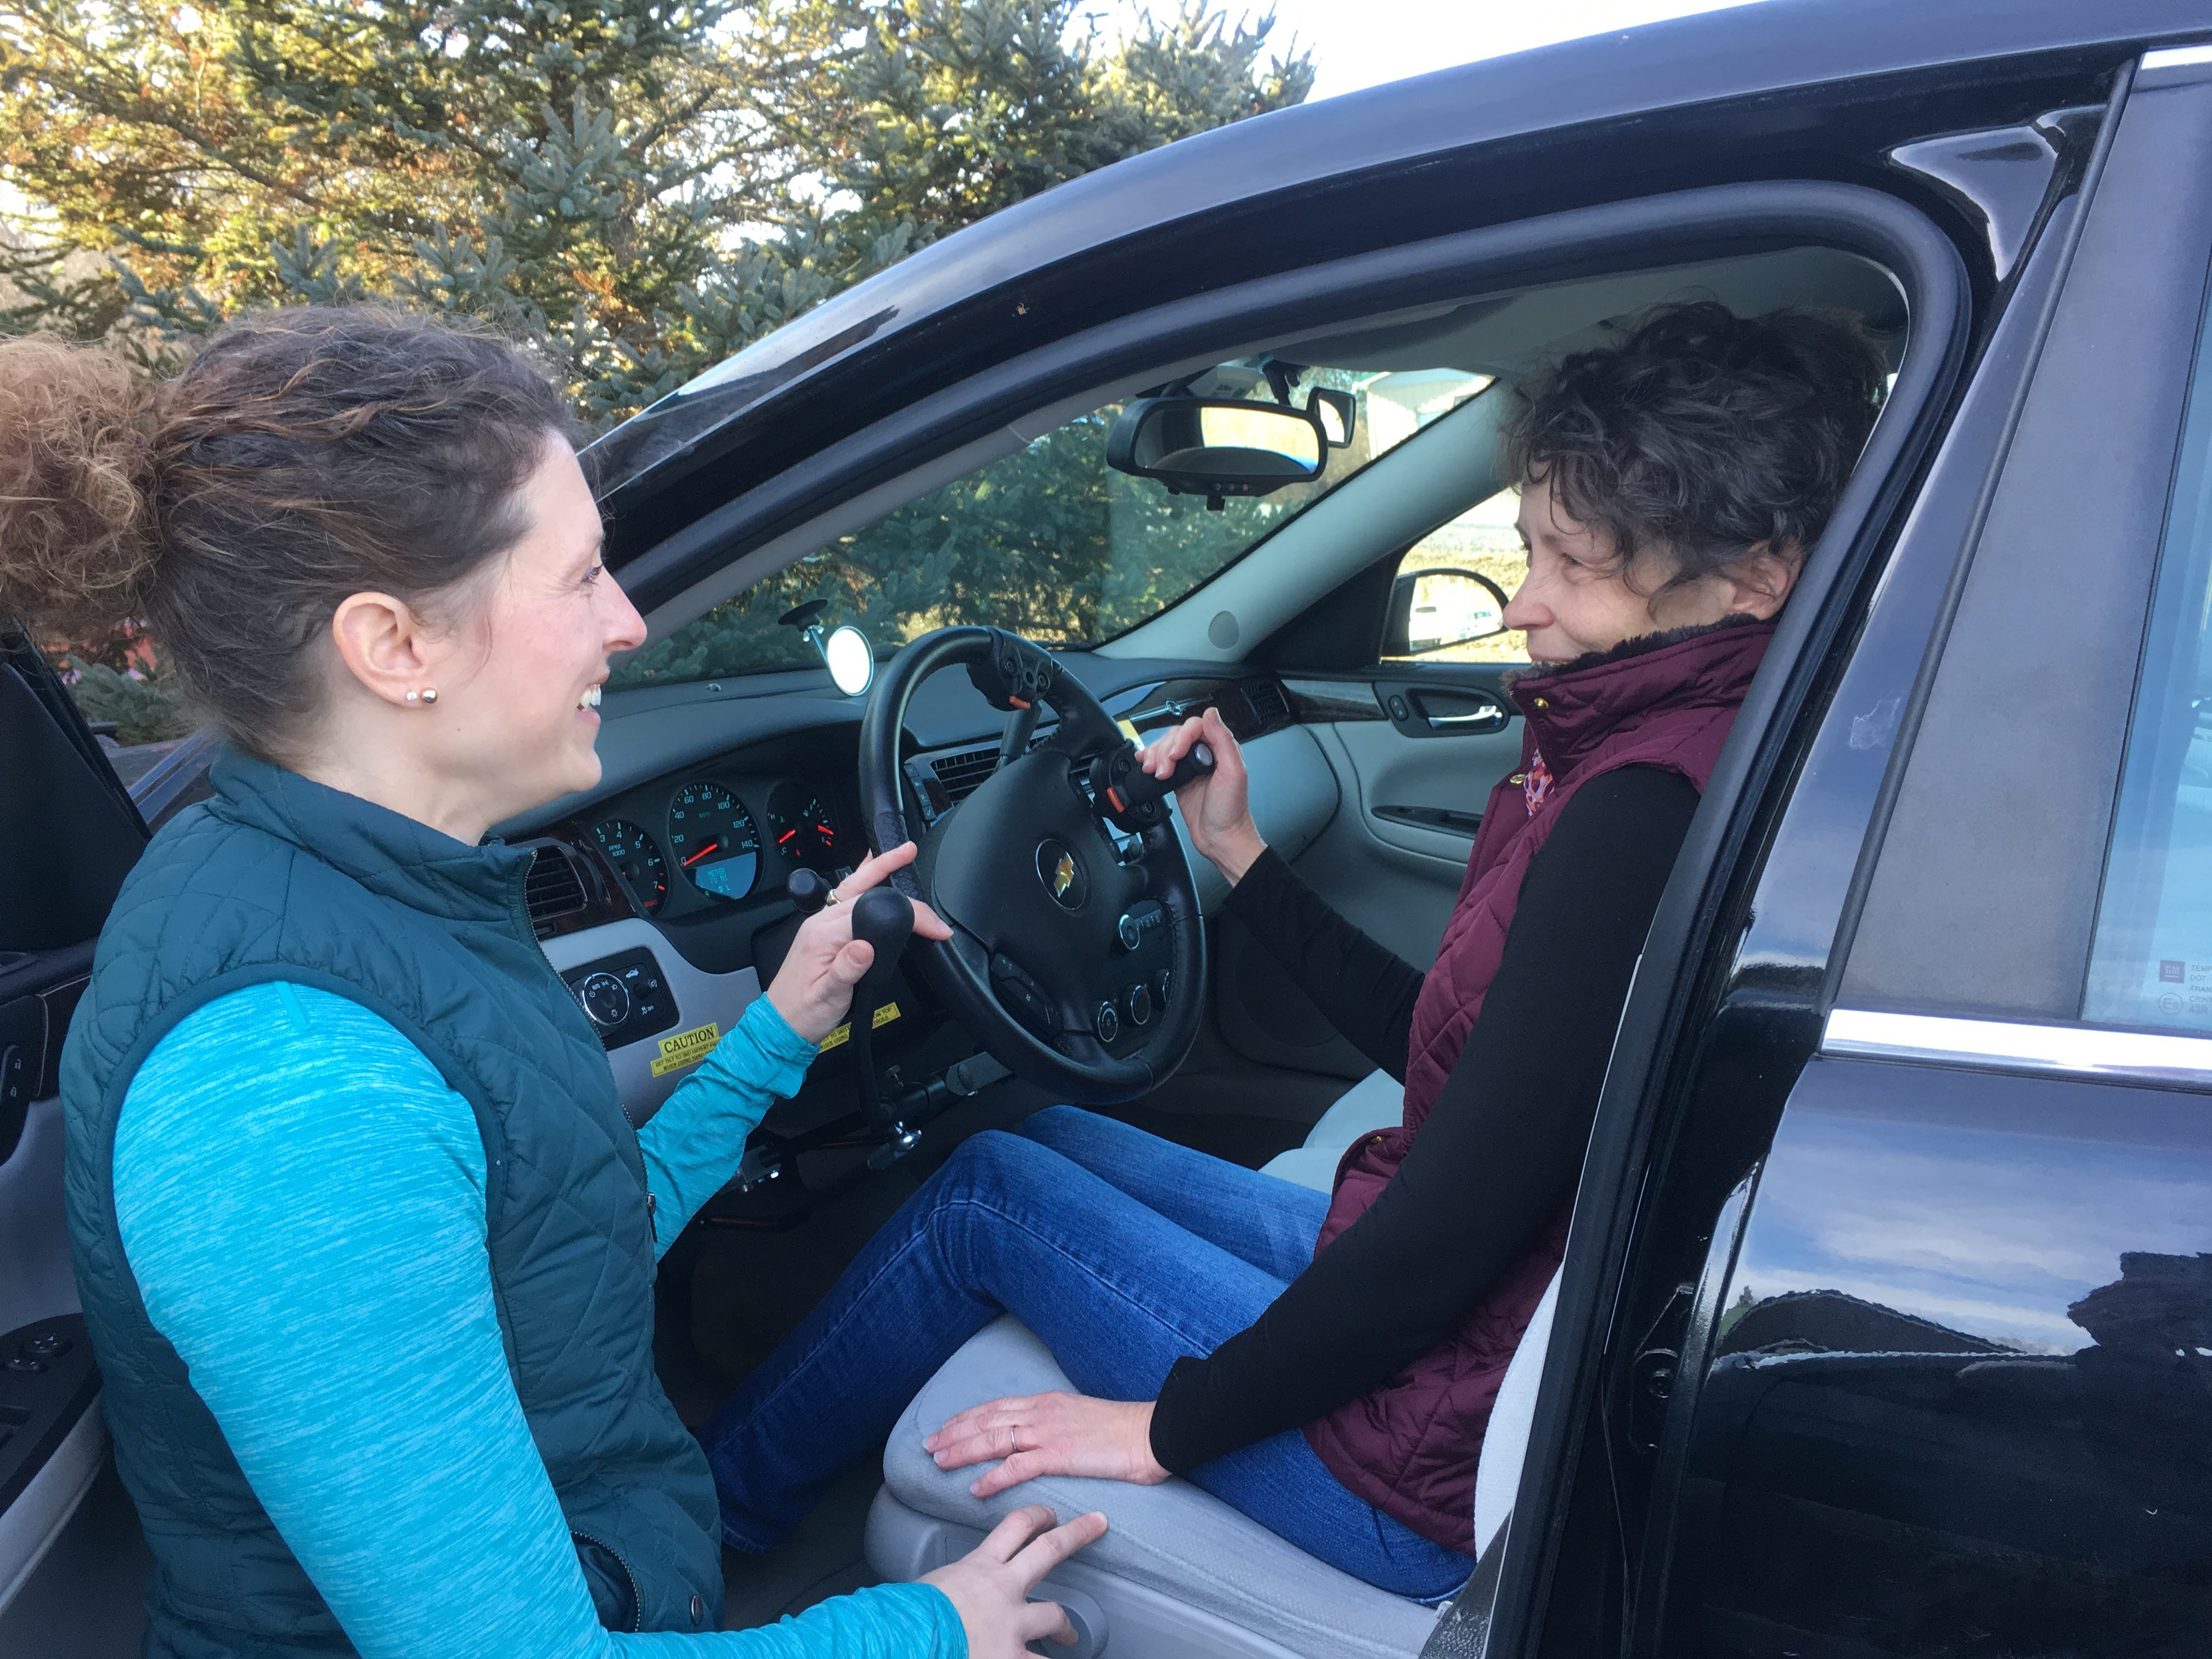 Driver rehab specialists showing a driver how to use hand controls. Driver